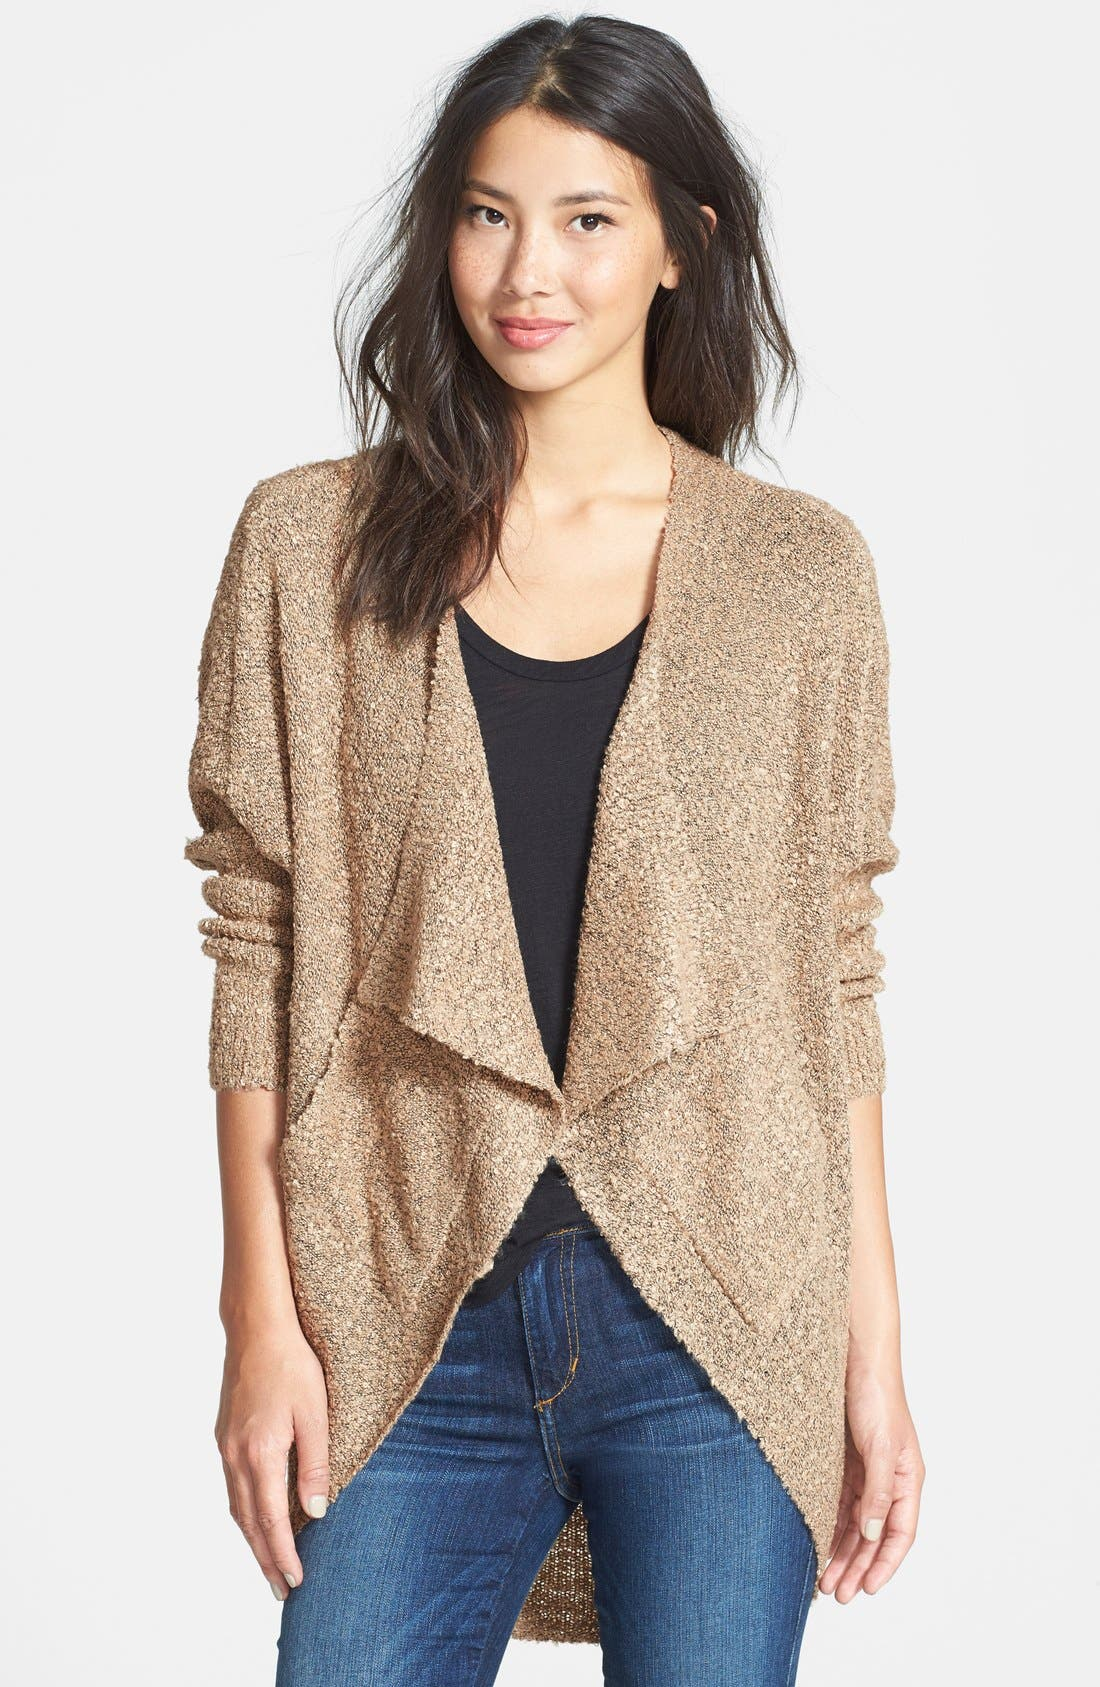 Alternate Image 1 Selected - RD Style Throw On Dolman Sleeve Cardigan